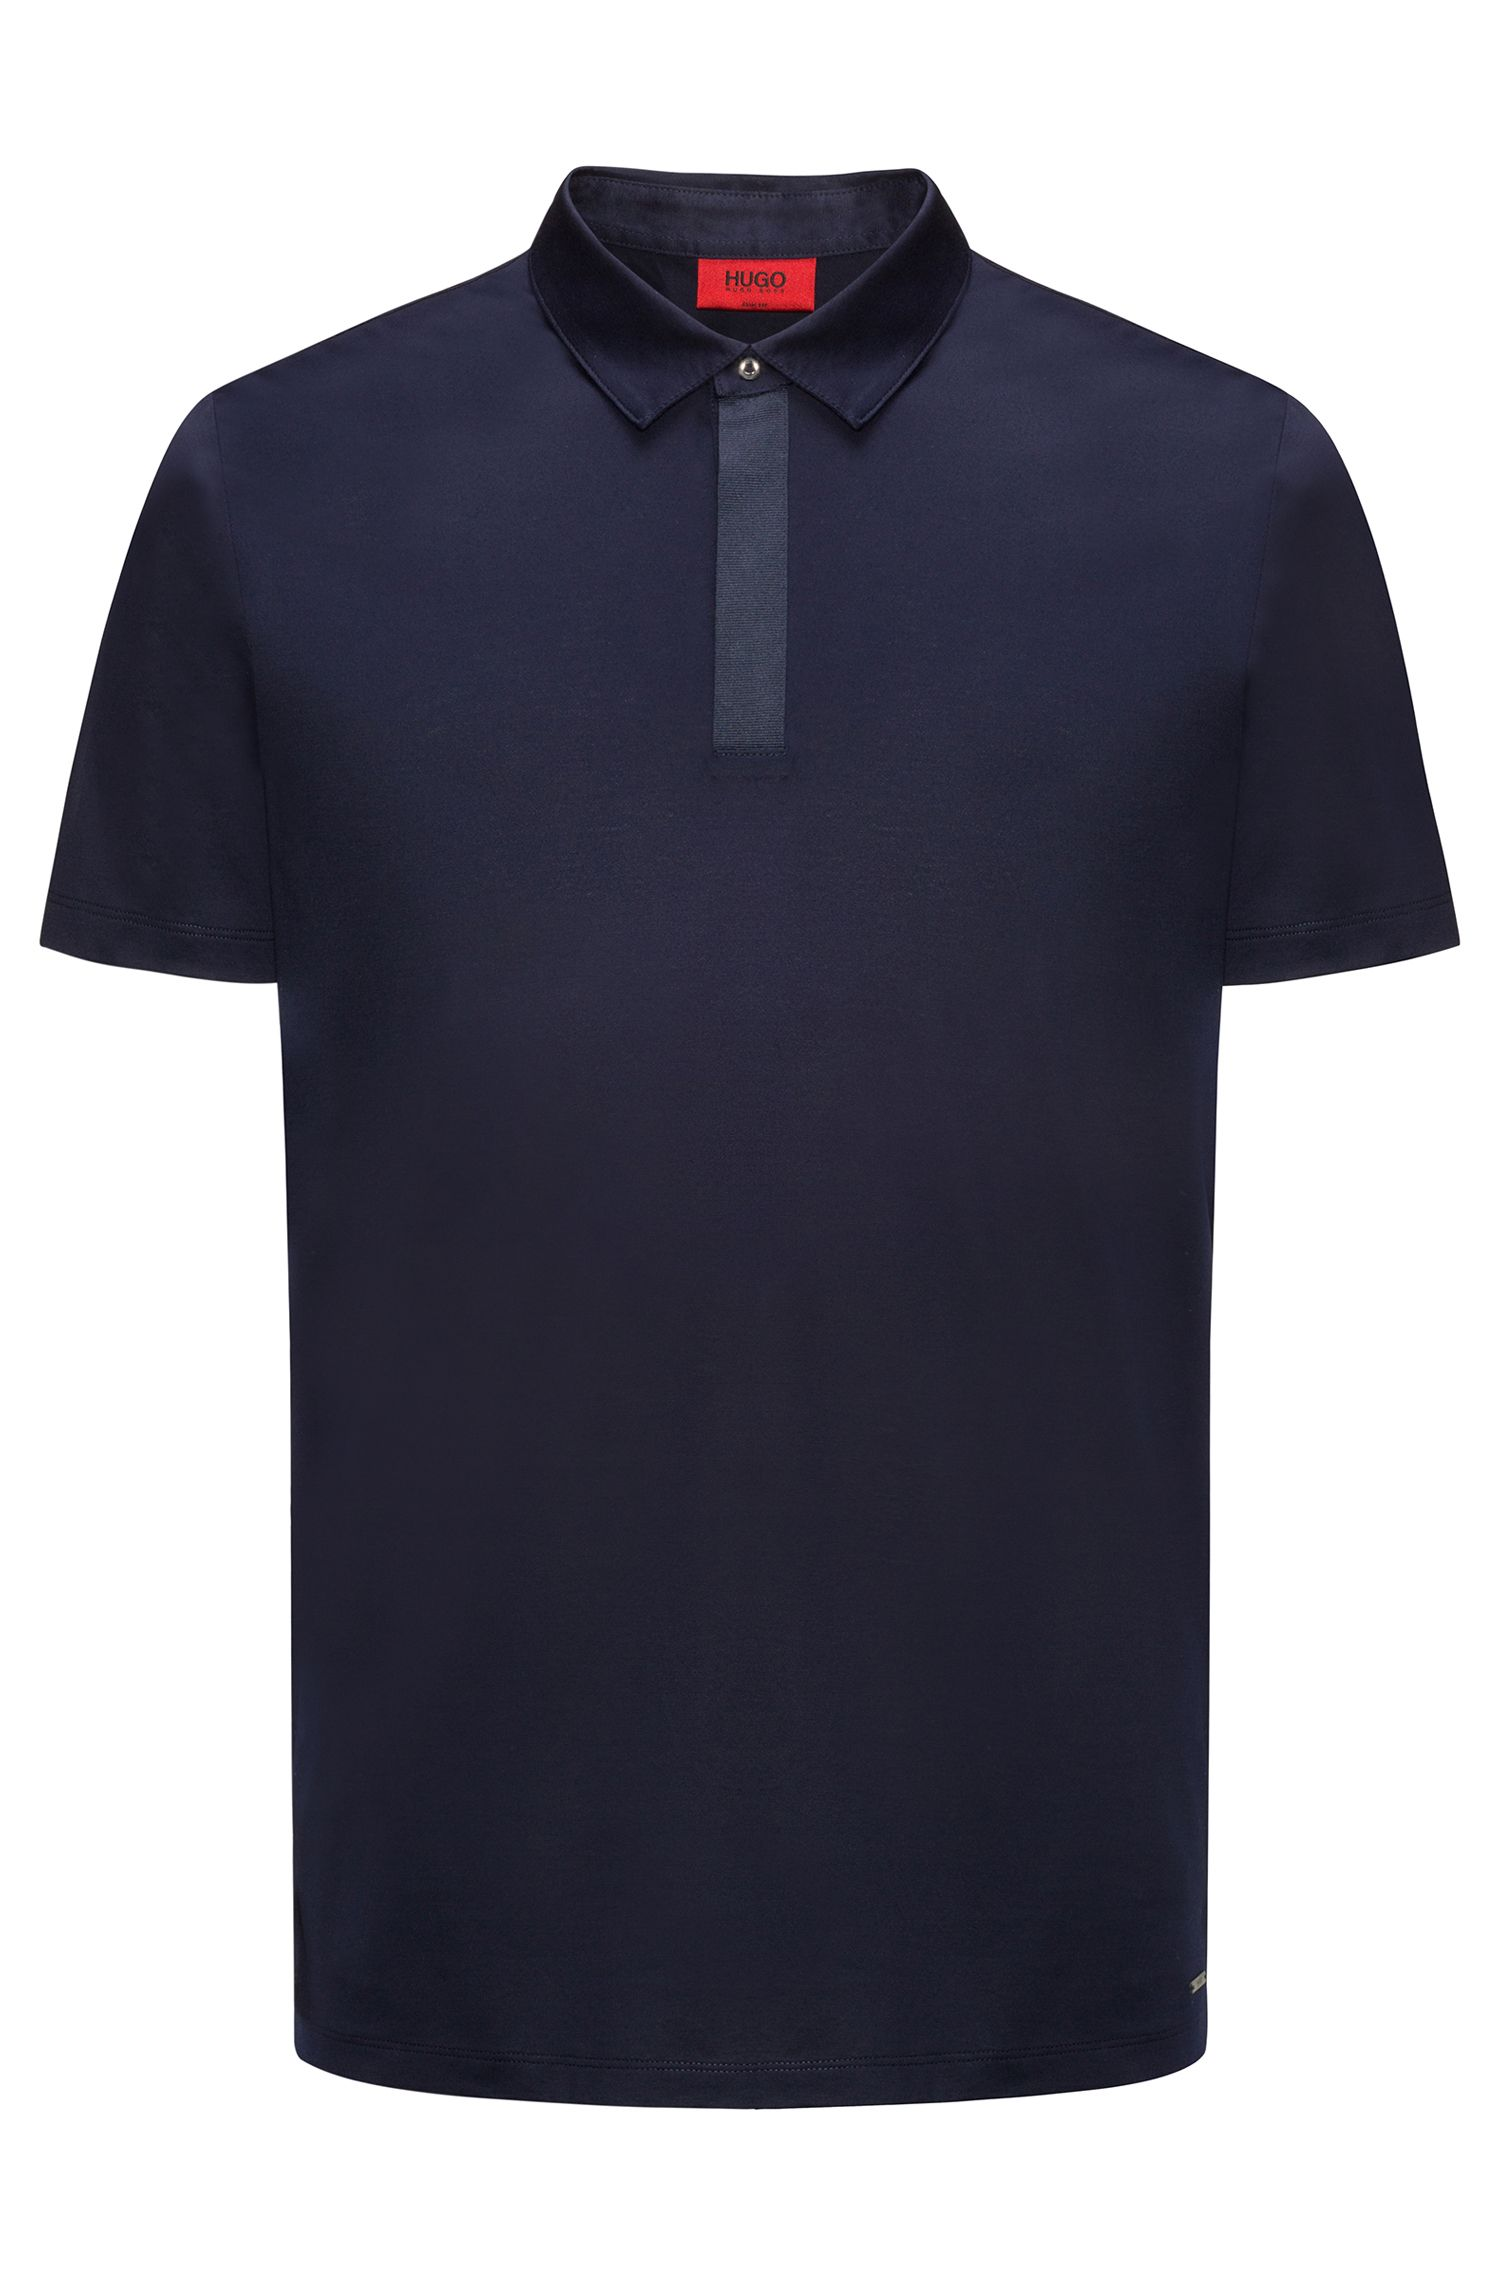 Cotton polo shirt in a slim fit